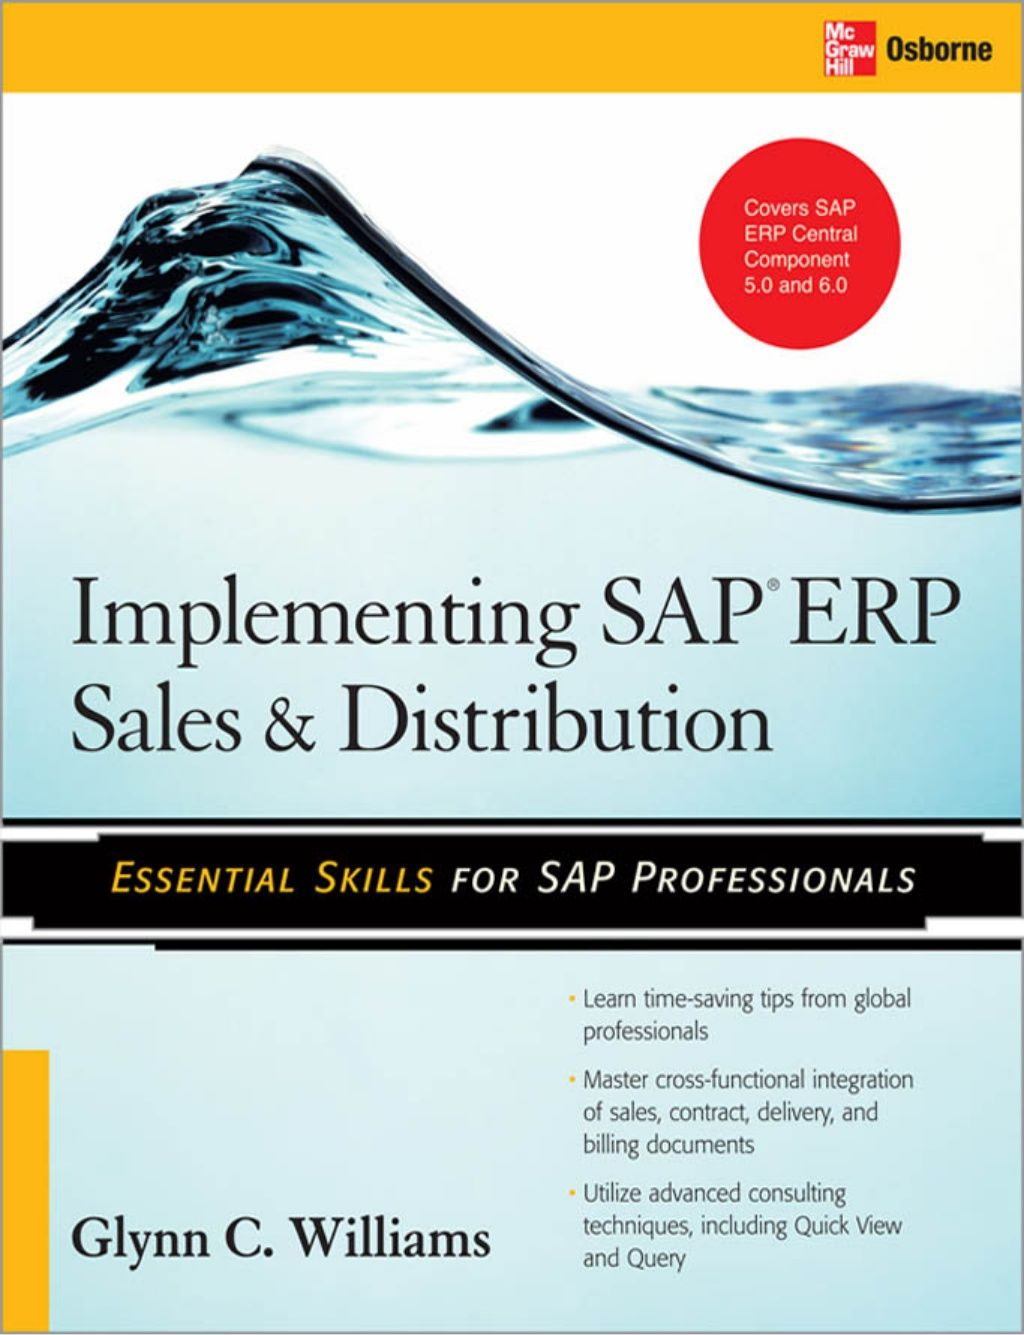 sap-sd-technical-and-functional-step-by-step-guide-by-tata-mcgraw-hill by  Vinit Dheer via Slideshare